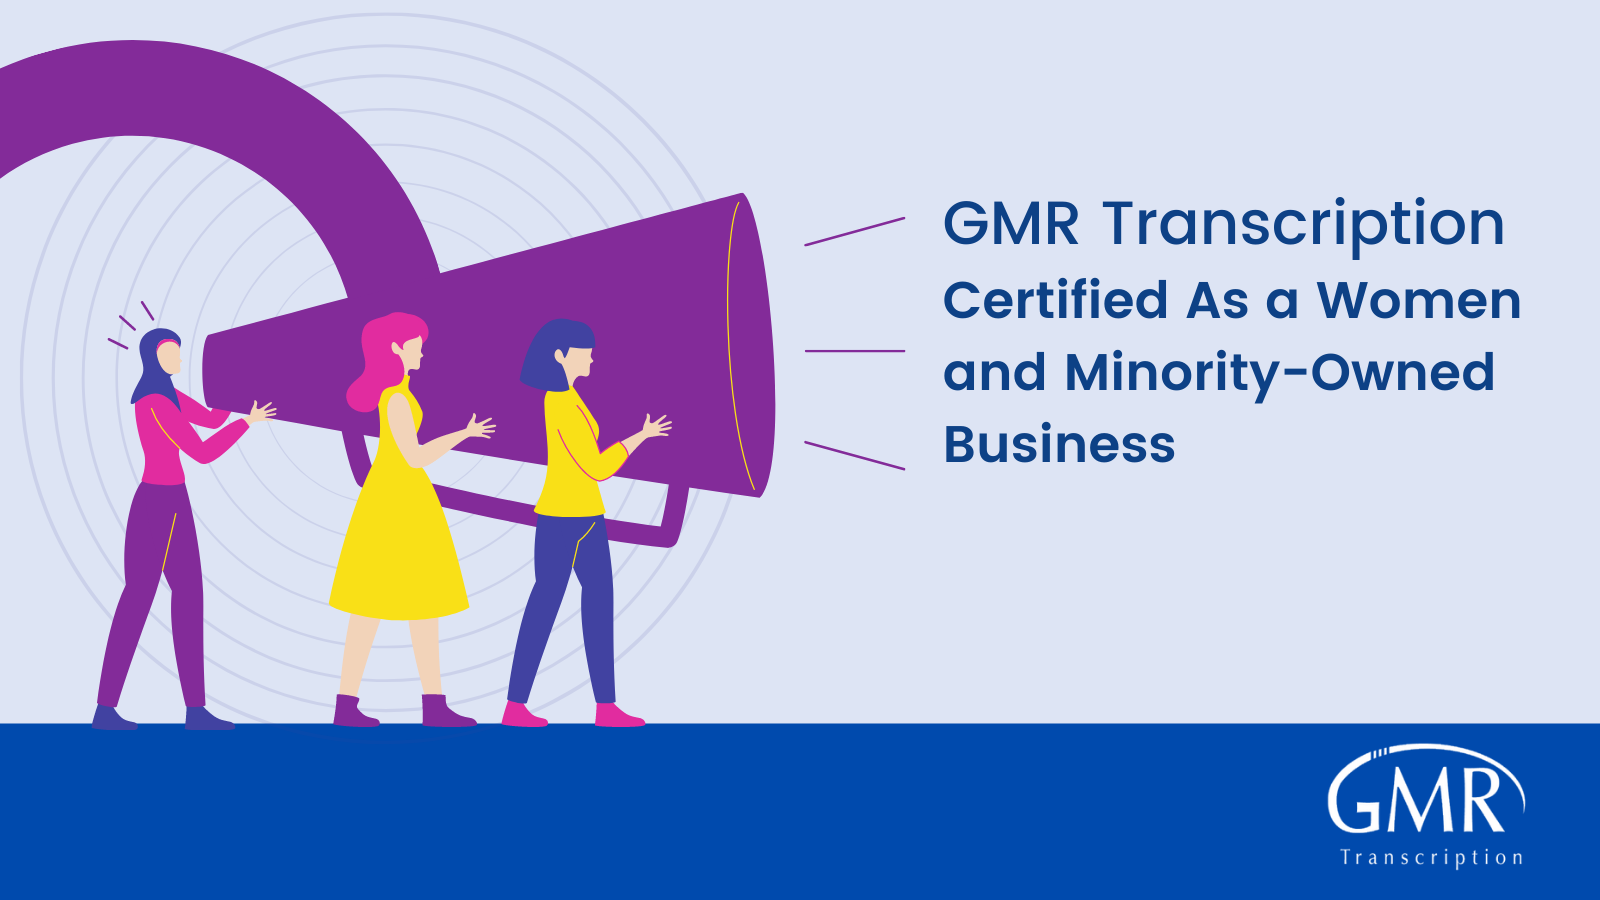 _— GMR Transcription  Certified As a Women ~ and Minority-Owned —_ Business